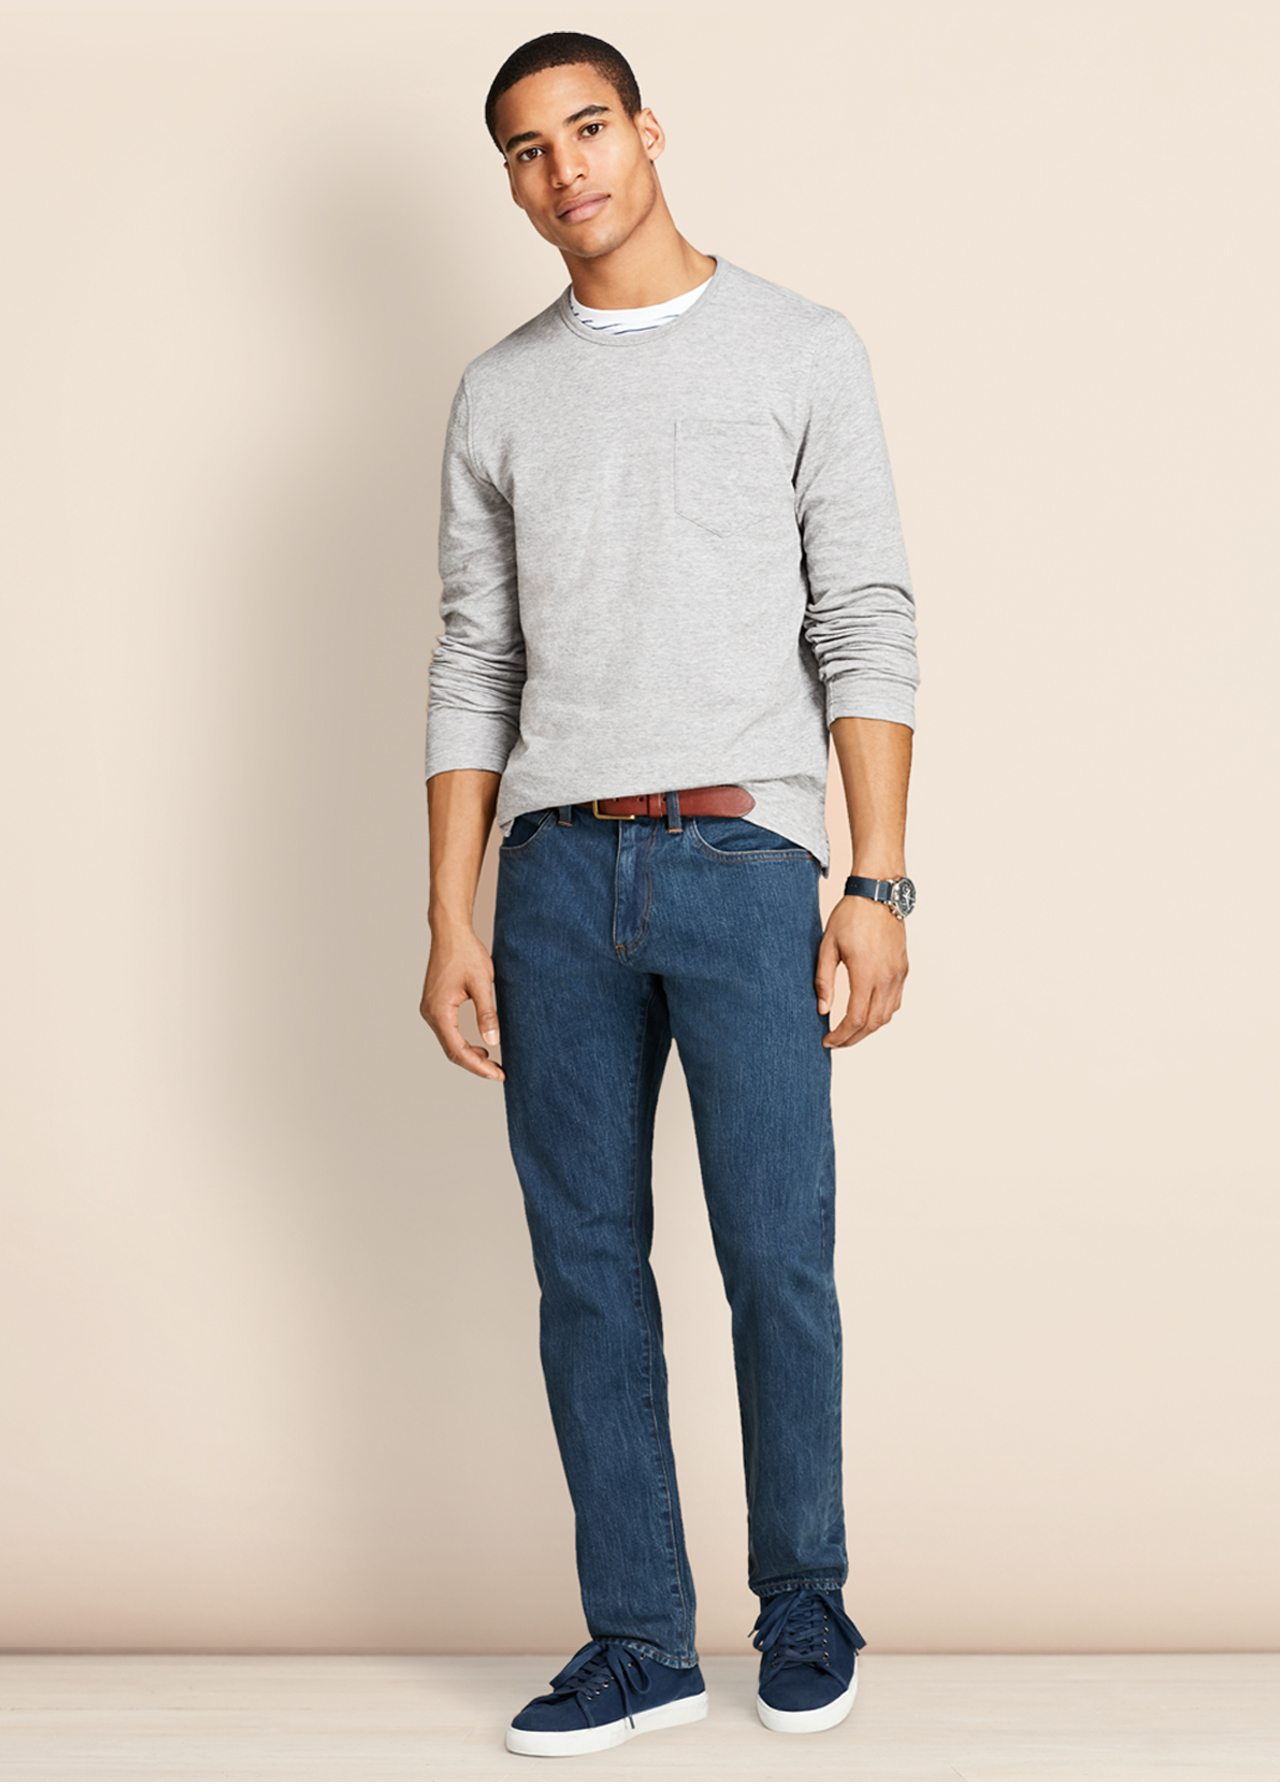 Style's In Our Jeans With two fits and three great washes, it just adds up: your perfect jeans are waiting.